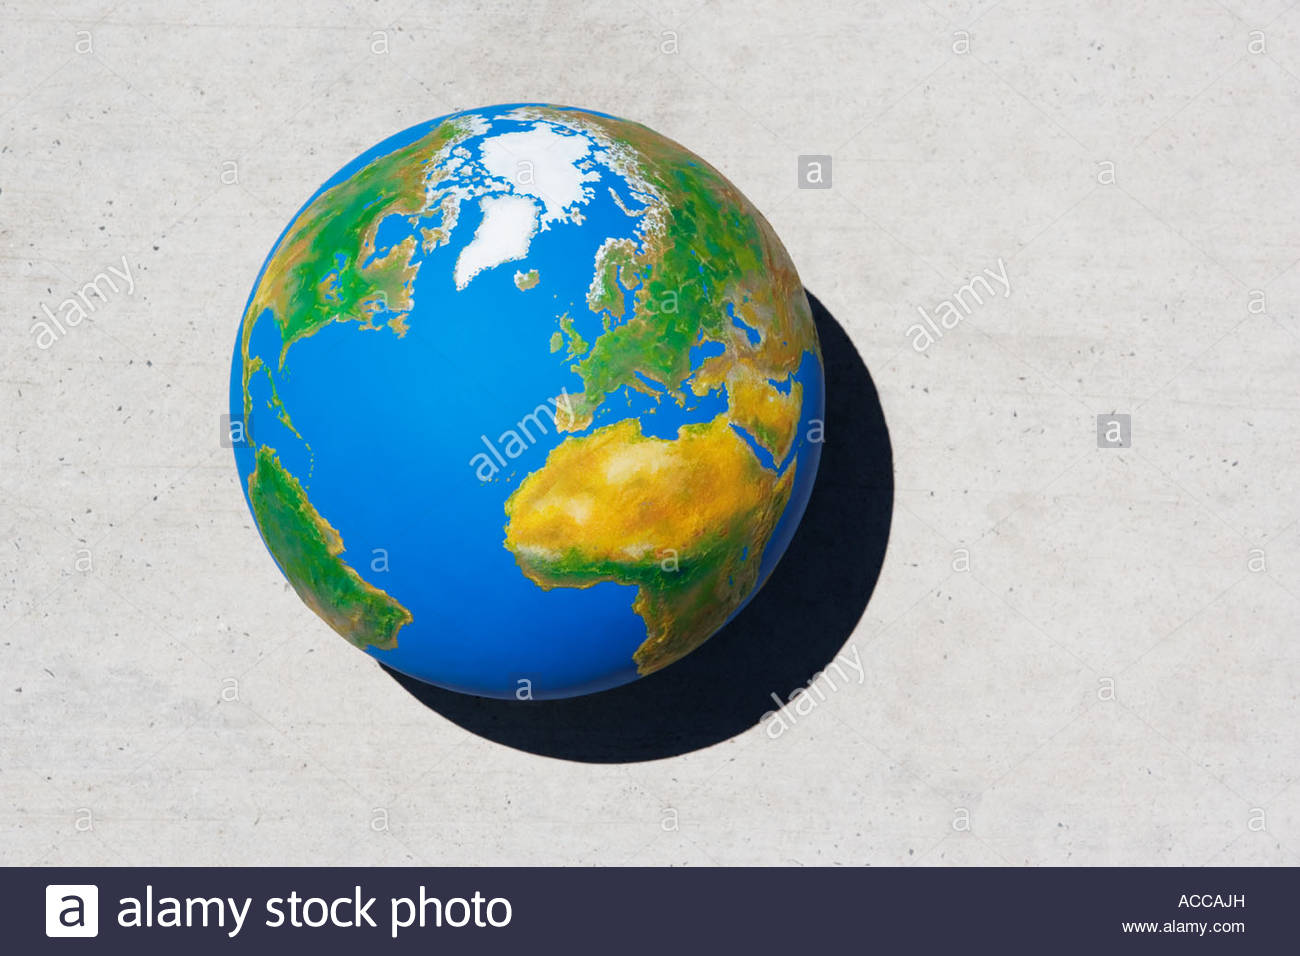 Detailed view of globe - Stock Image